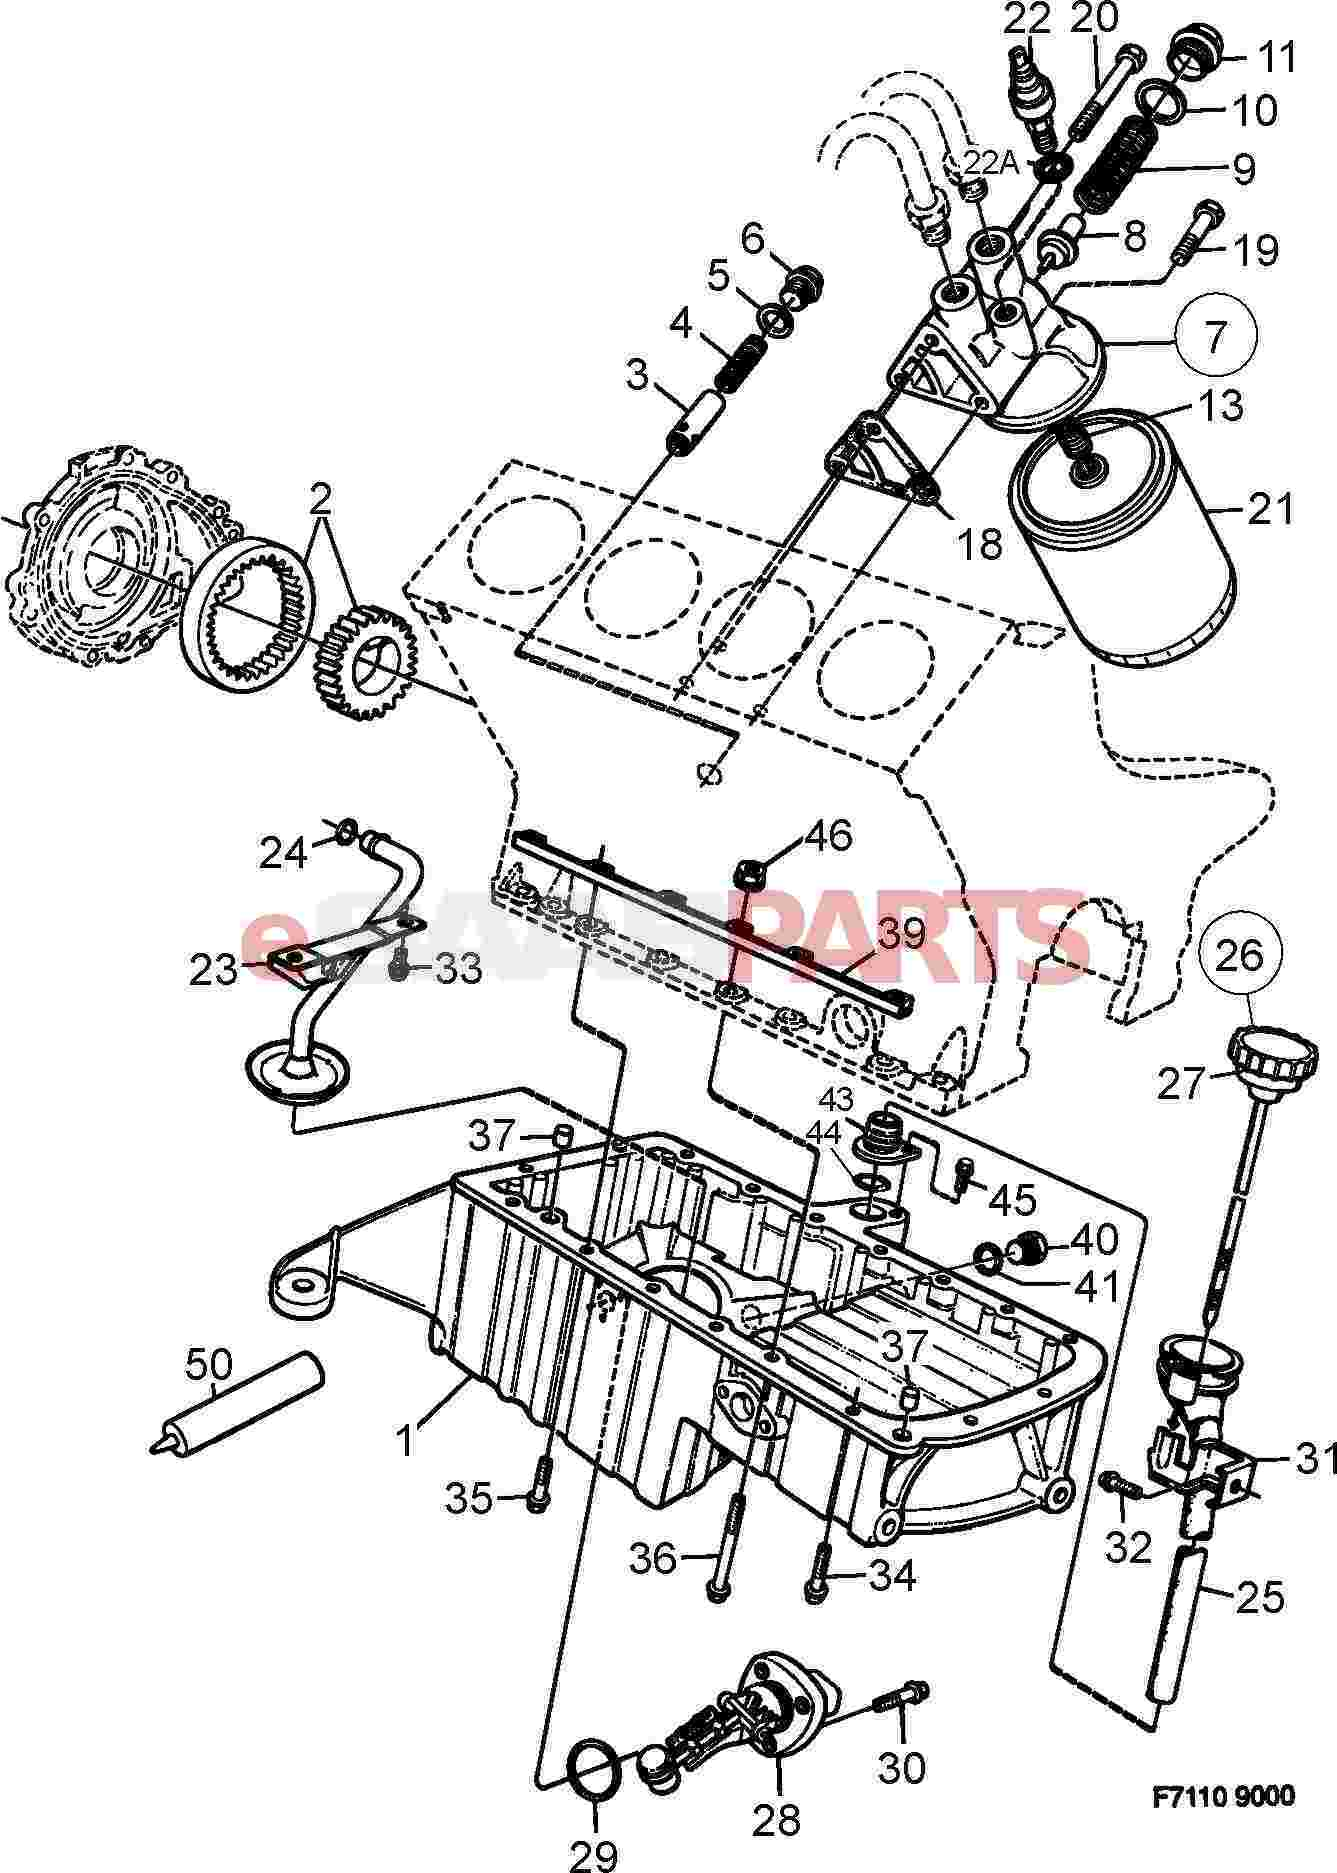 Saab 9000 Engine Diagram Quick Start Guide Of Wiring For Oil Diagrams Source Rh 12 18 2 Ludwiglab De 1990